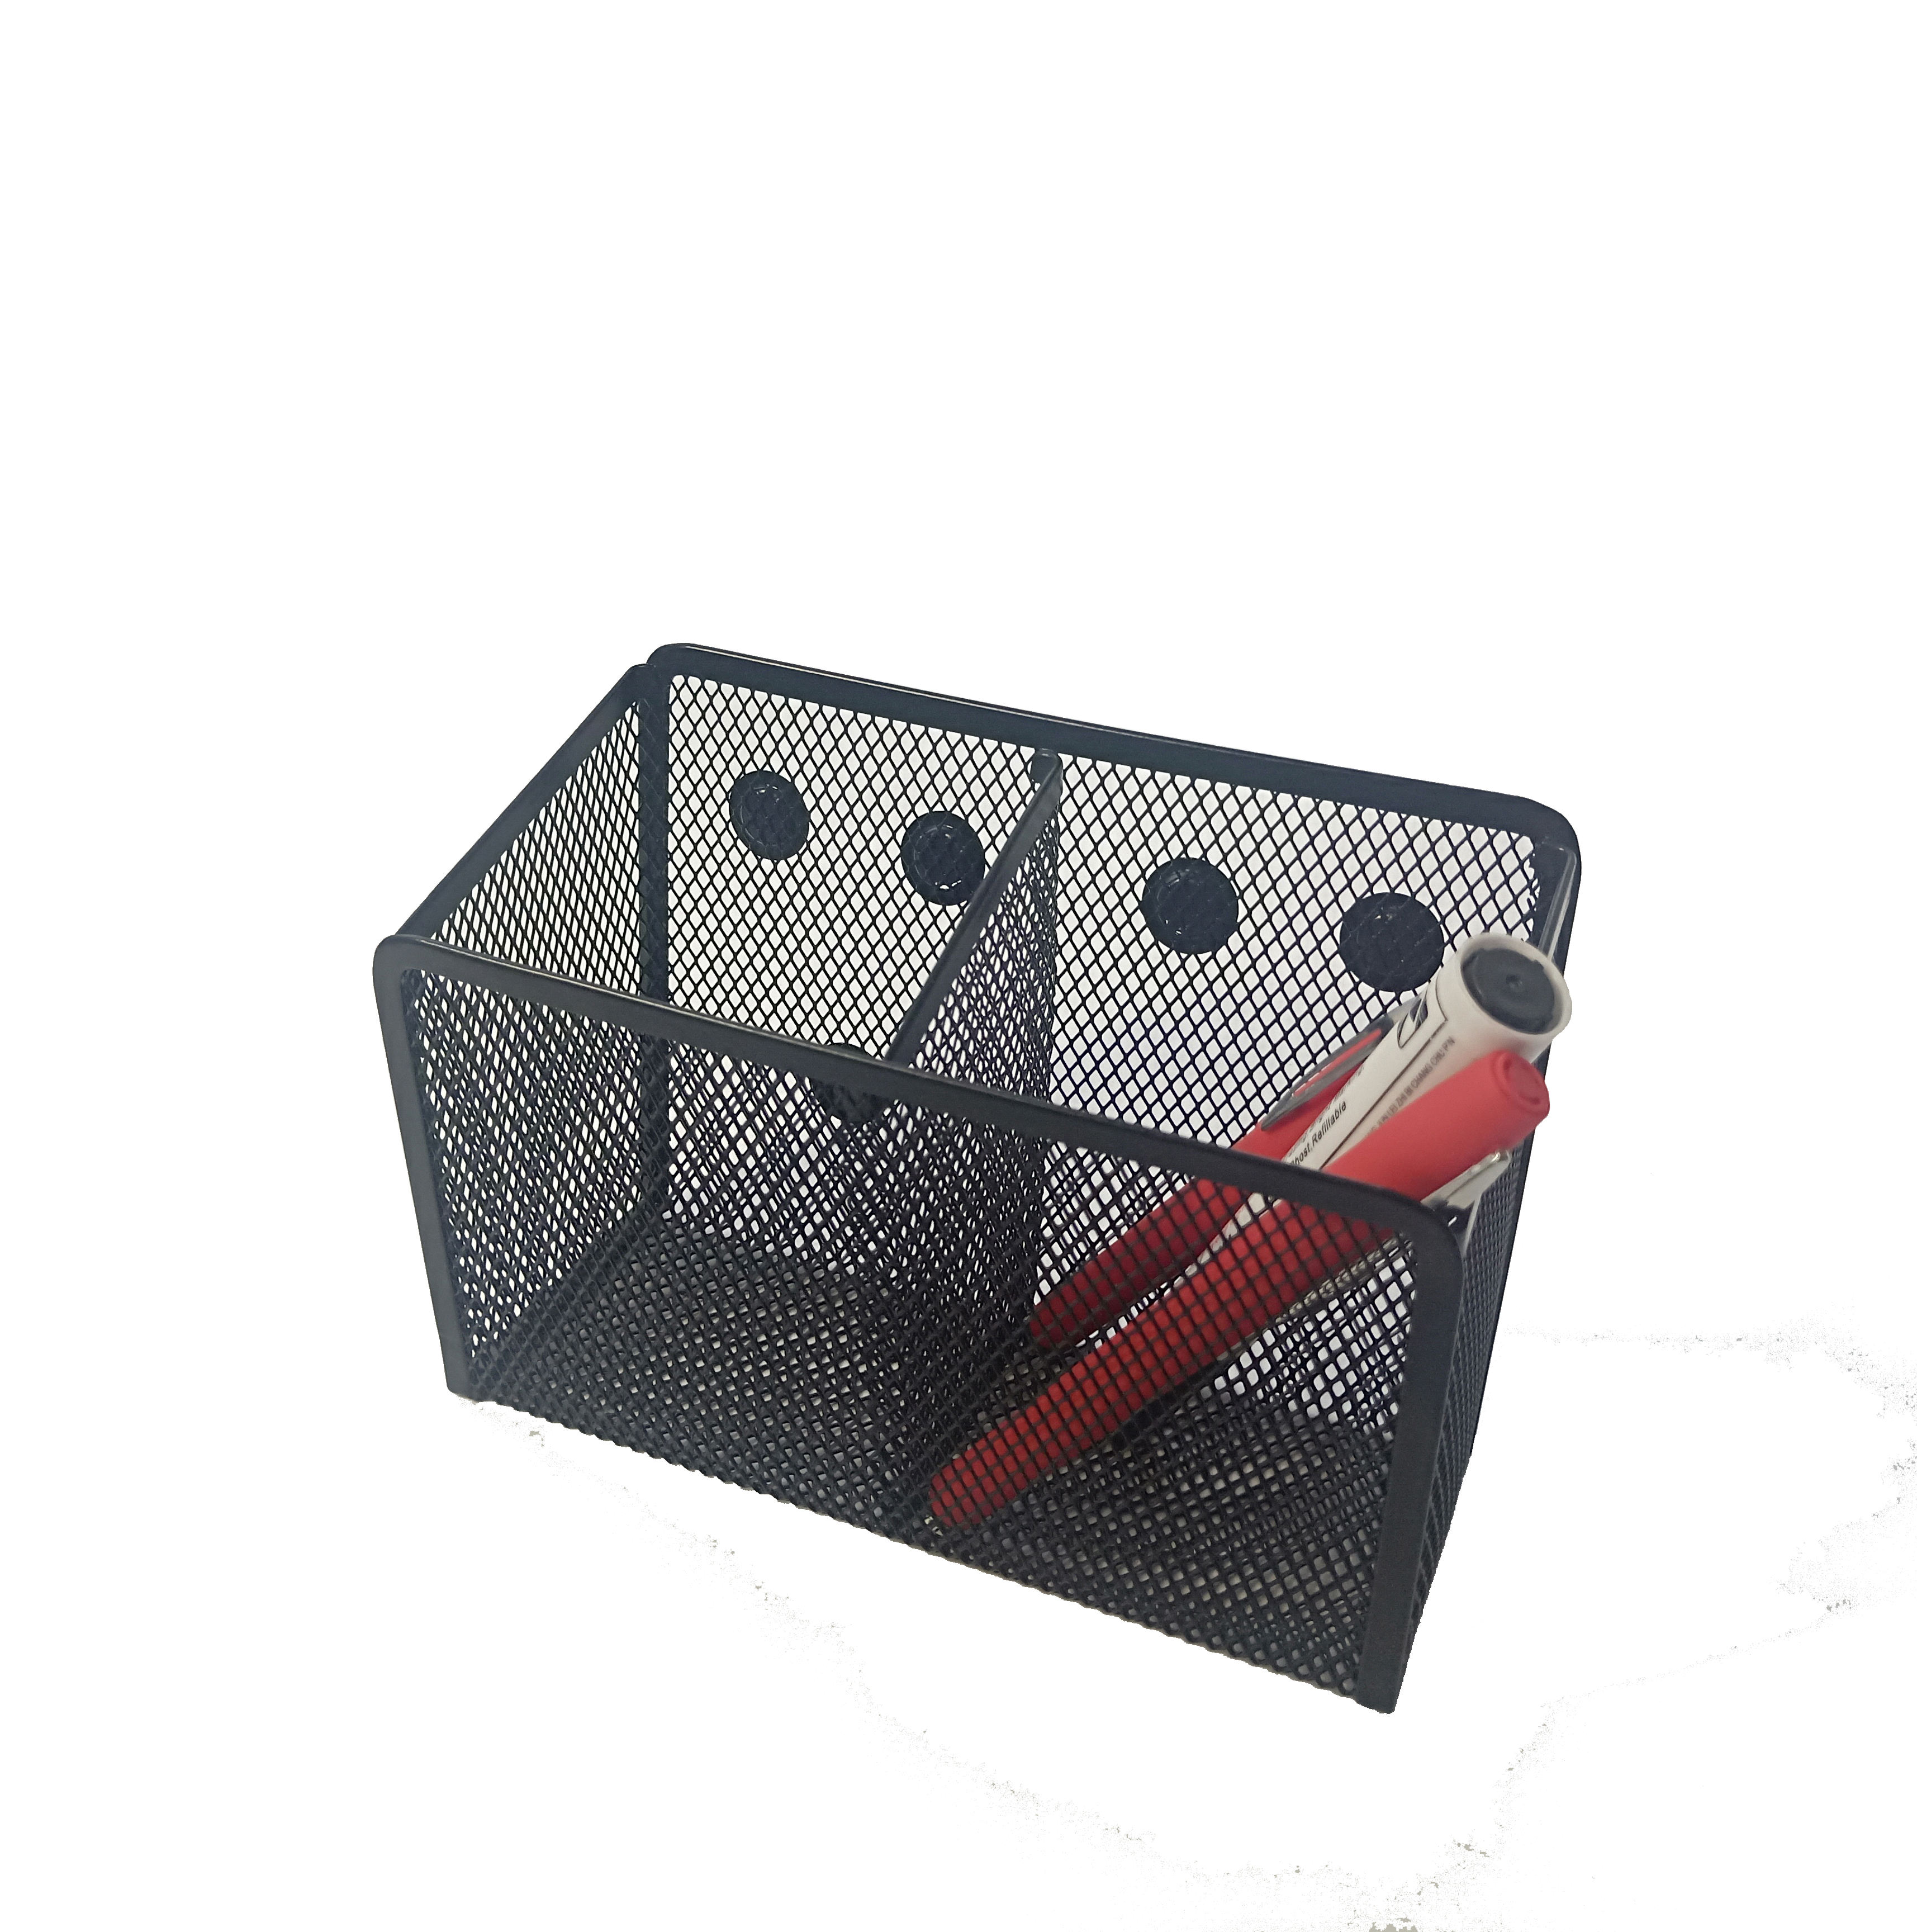 Office Supply 2 Generous Compartments Metal Mesh Magnetic Pencil Holder Storage Basket Organizer